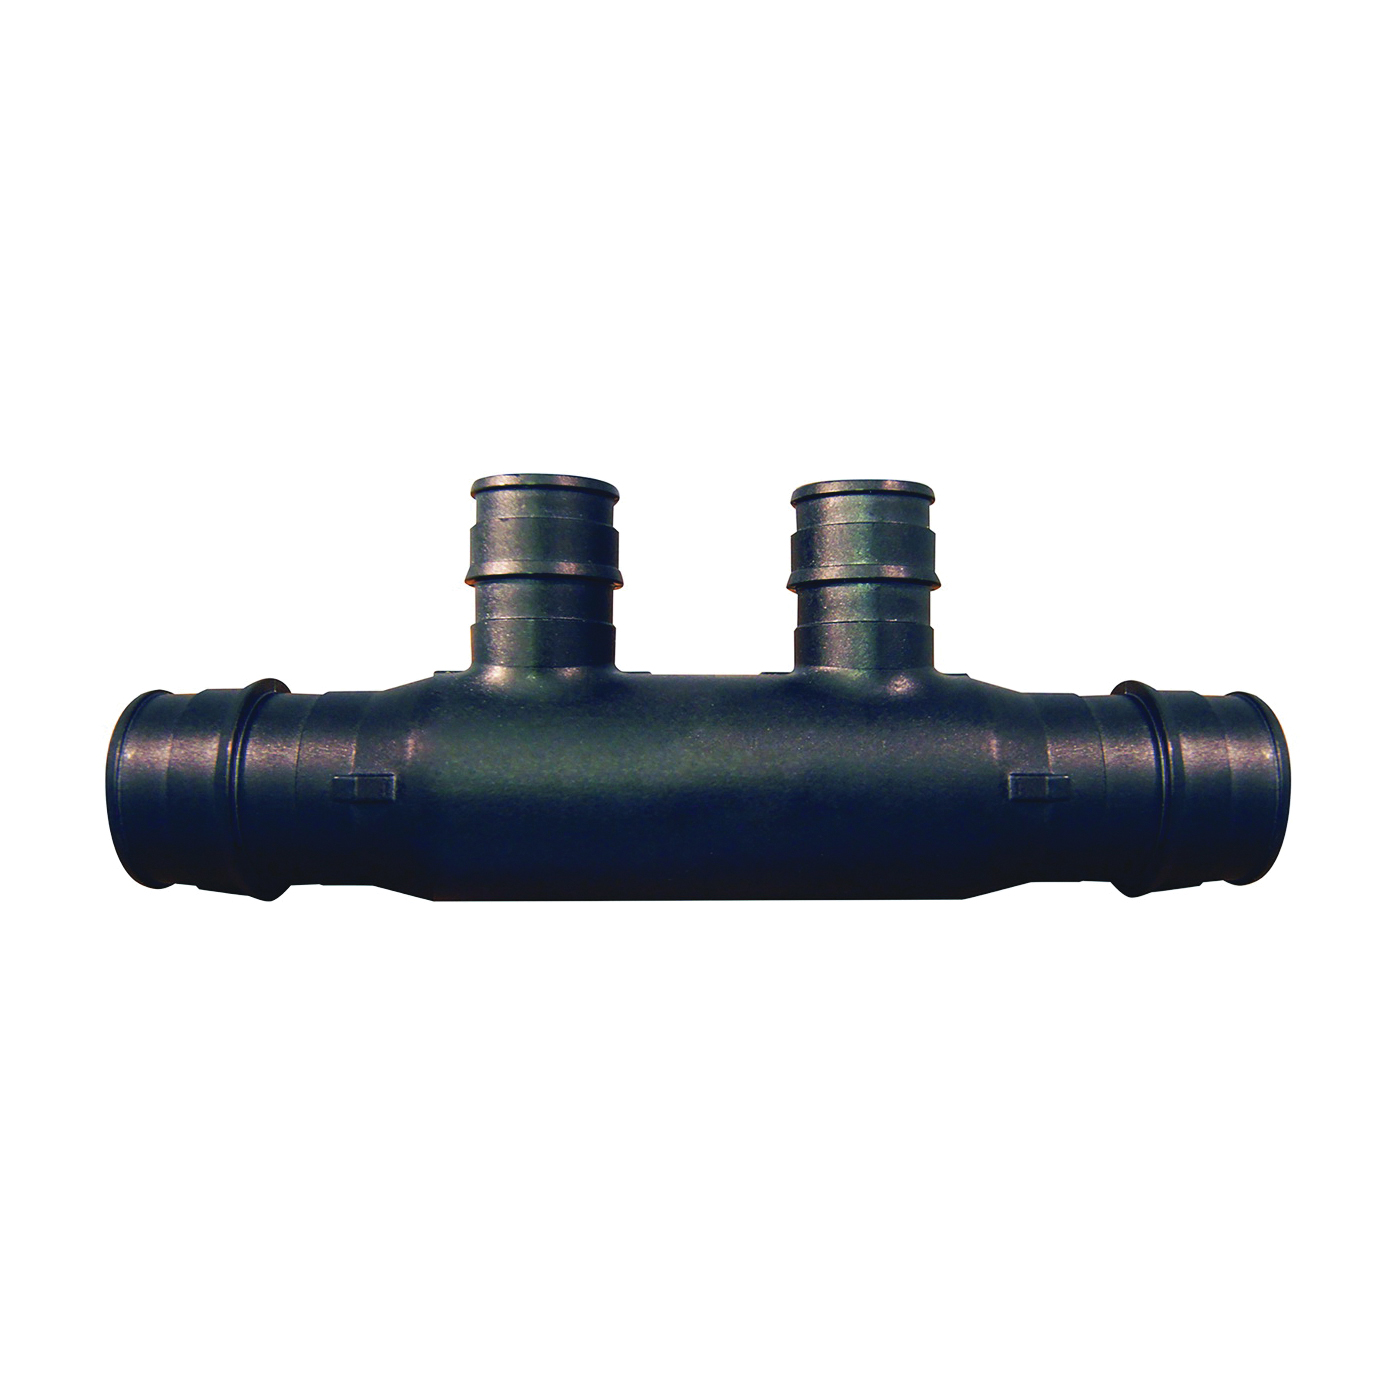 Picture of Apollo ExpansionPEX EPXM2PTO Open End Manifold, 2-Inlet, 3/4 in Inlet, 2-Outlet, 1/2 in Outlet, Brass